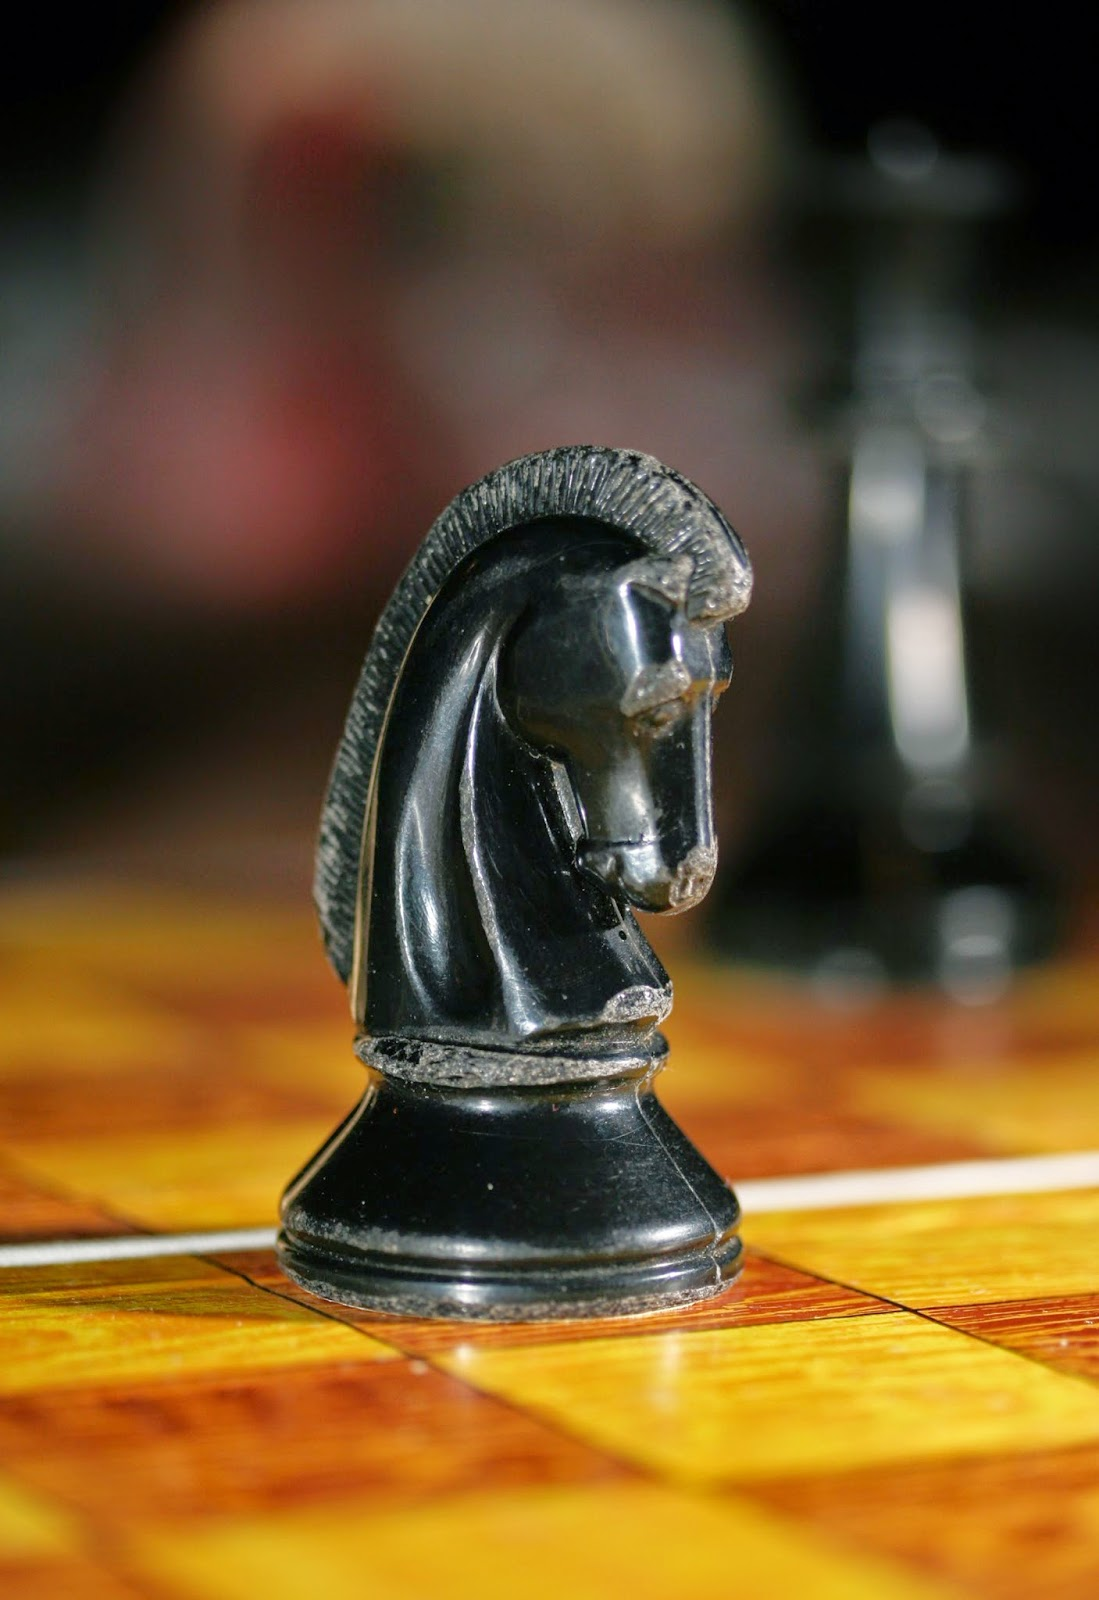 The Coon Train Report The Black Authority Has To Play Chess Not Checkers 19 видео обновлен 30 июл. the coon train report the black authority has to play chess not checkers